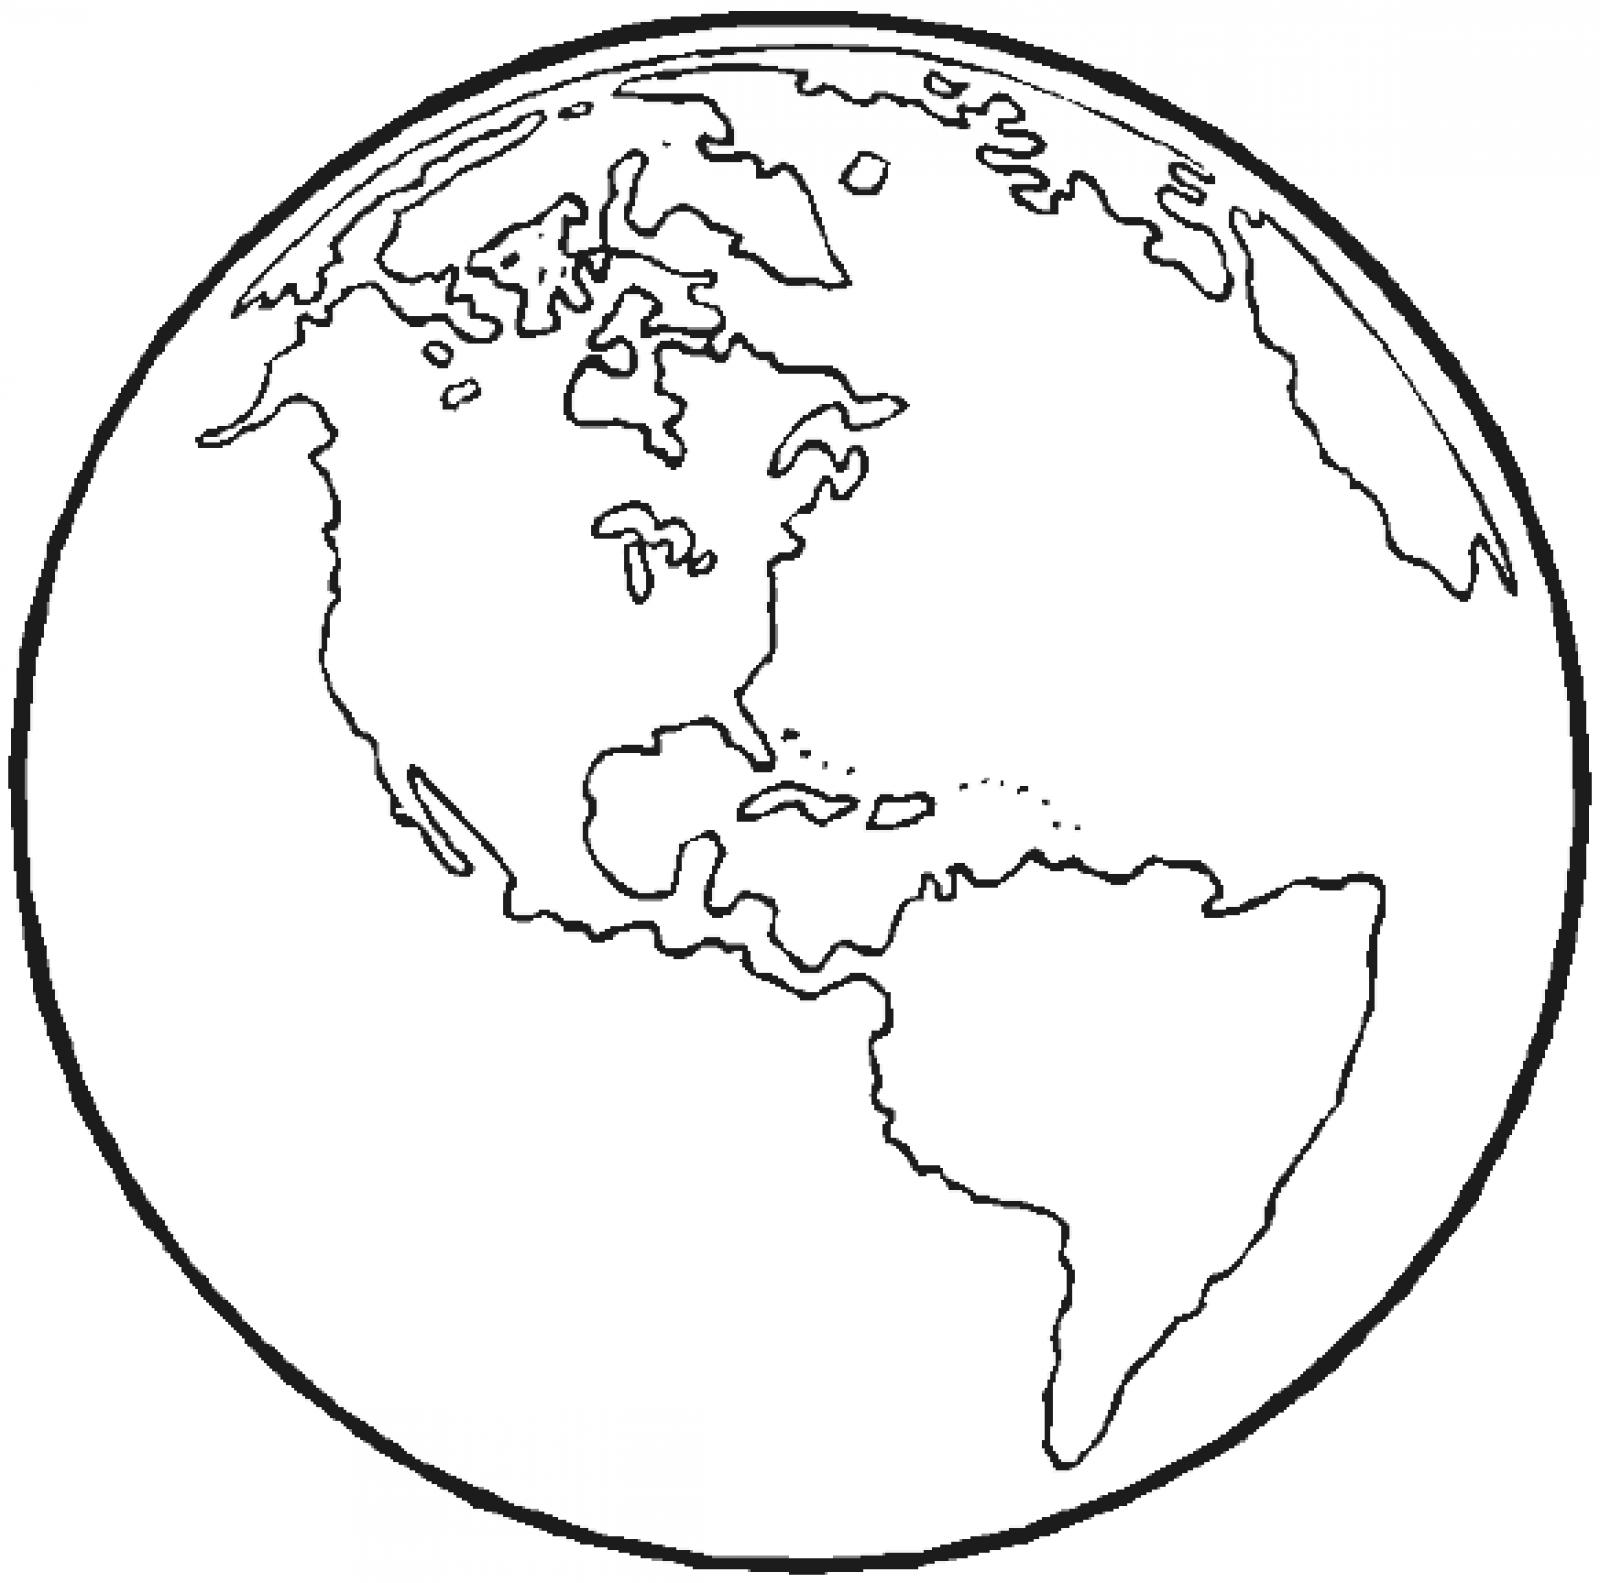 coloring earth free printable earth coloring pages for kids coloring earth